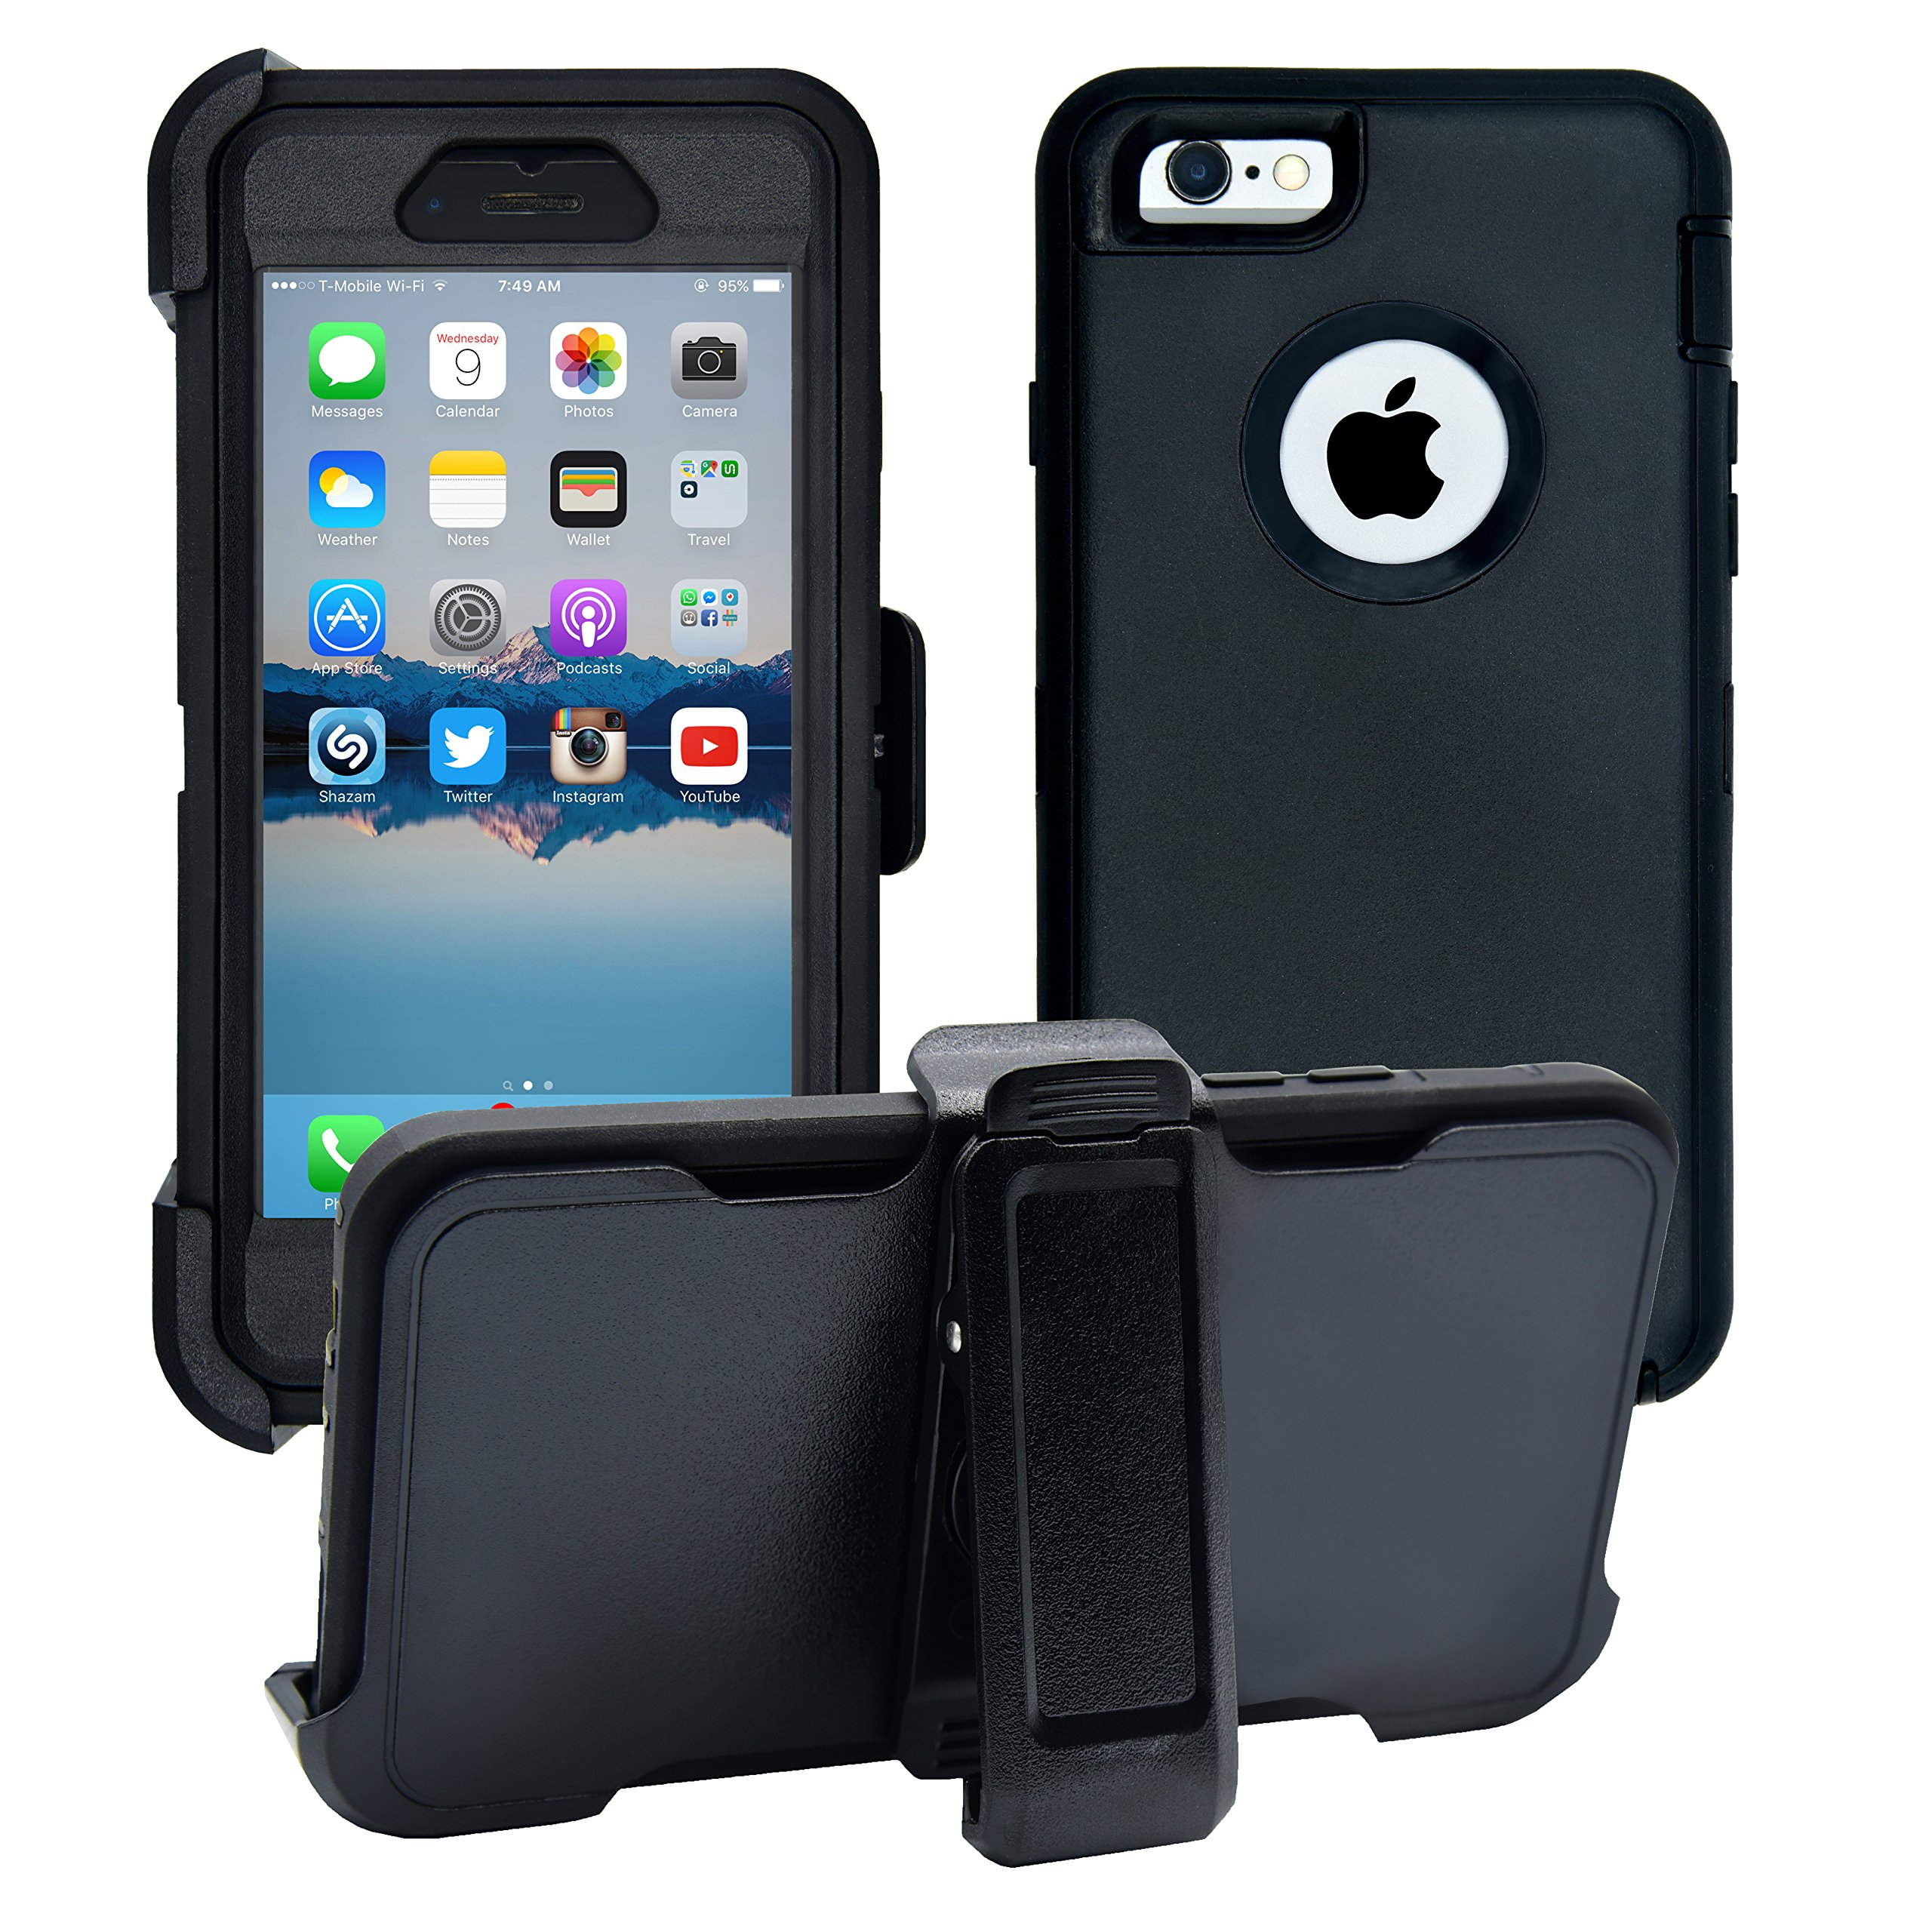 iPhone 6 / 6S Cover   2-in-1 Screen Protector & Holster Case   Full Body Military Grade Edge-to-Edge Protection with carrying belt clip   Drop Proof Shockproof Dustproof   Black / Black